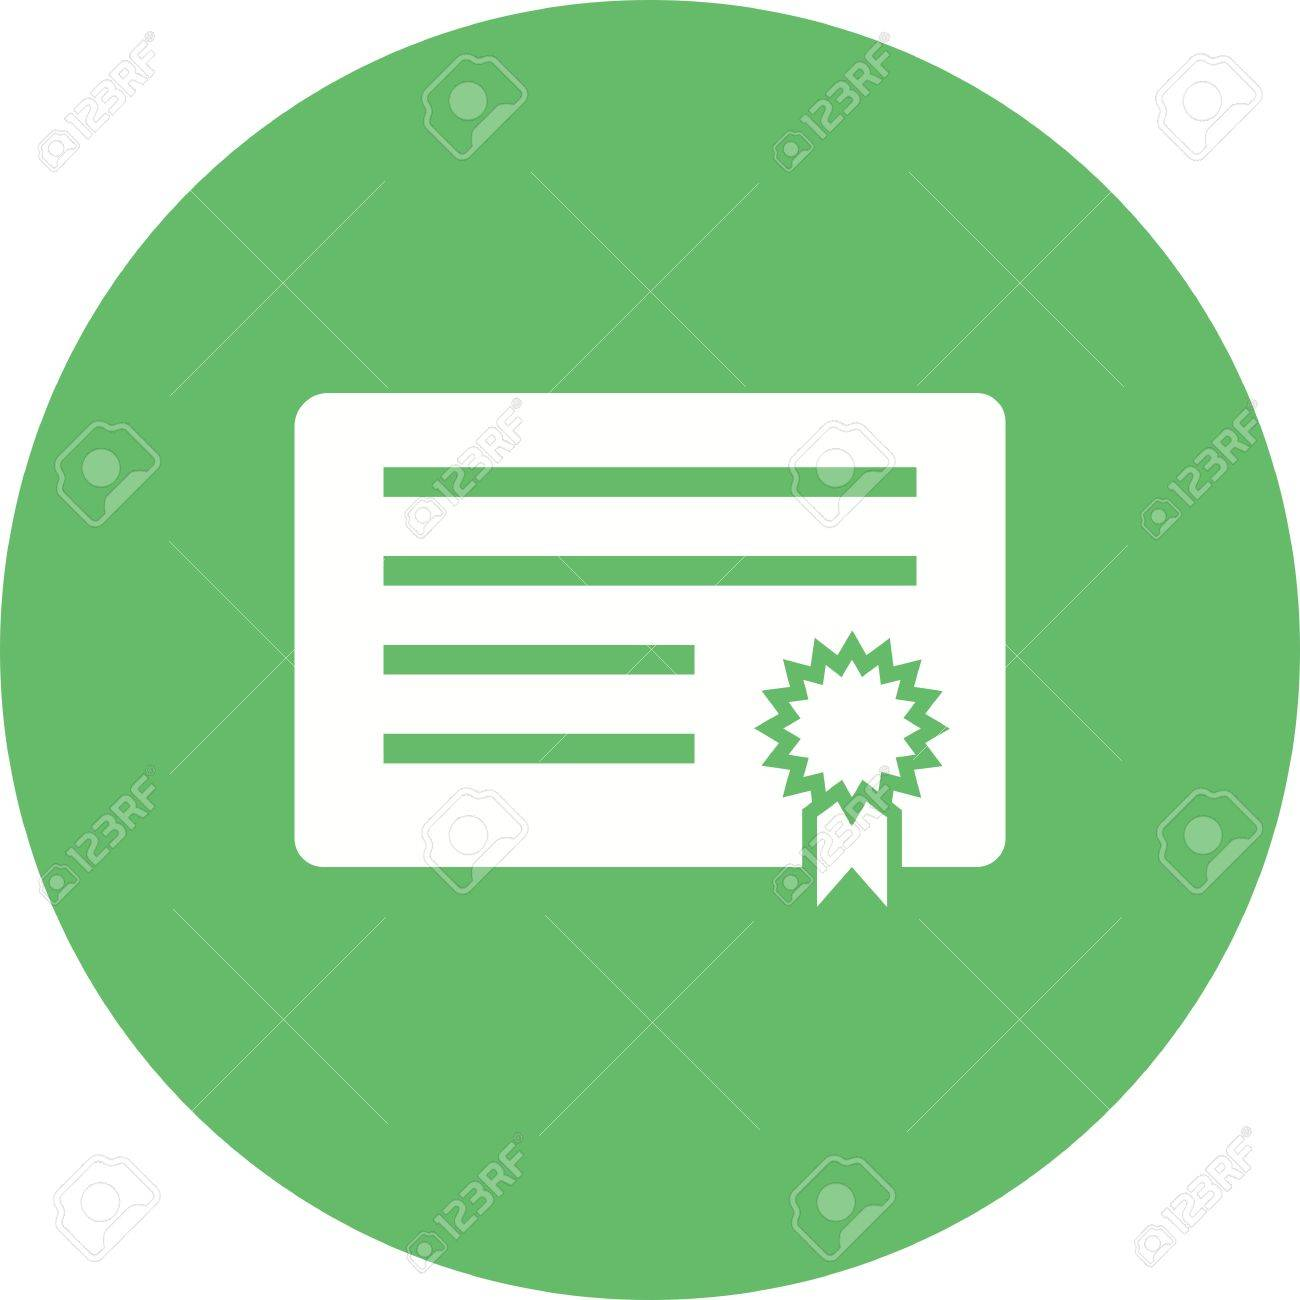 people work career goal icon vector image can also be used people work career goal icon vector image can also be used for